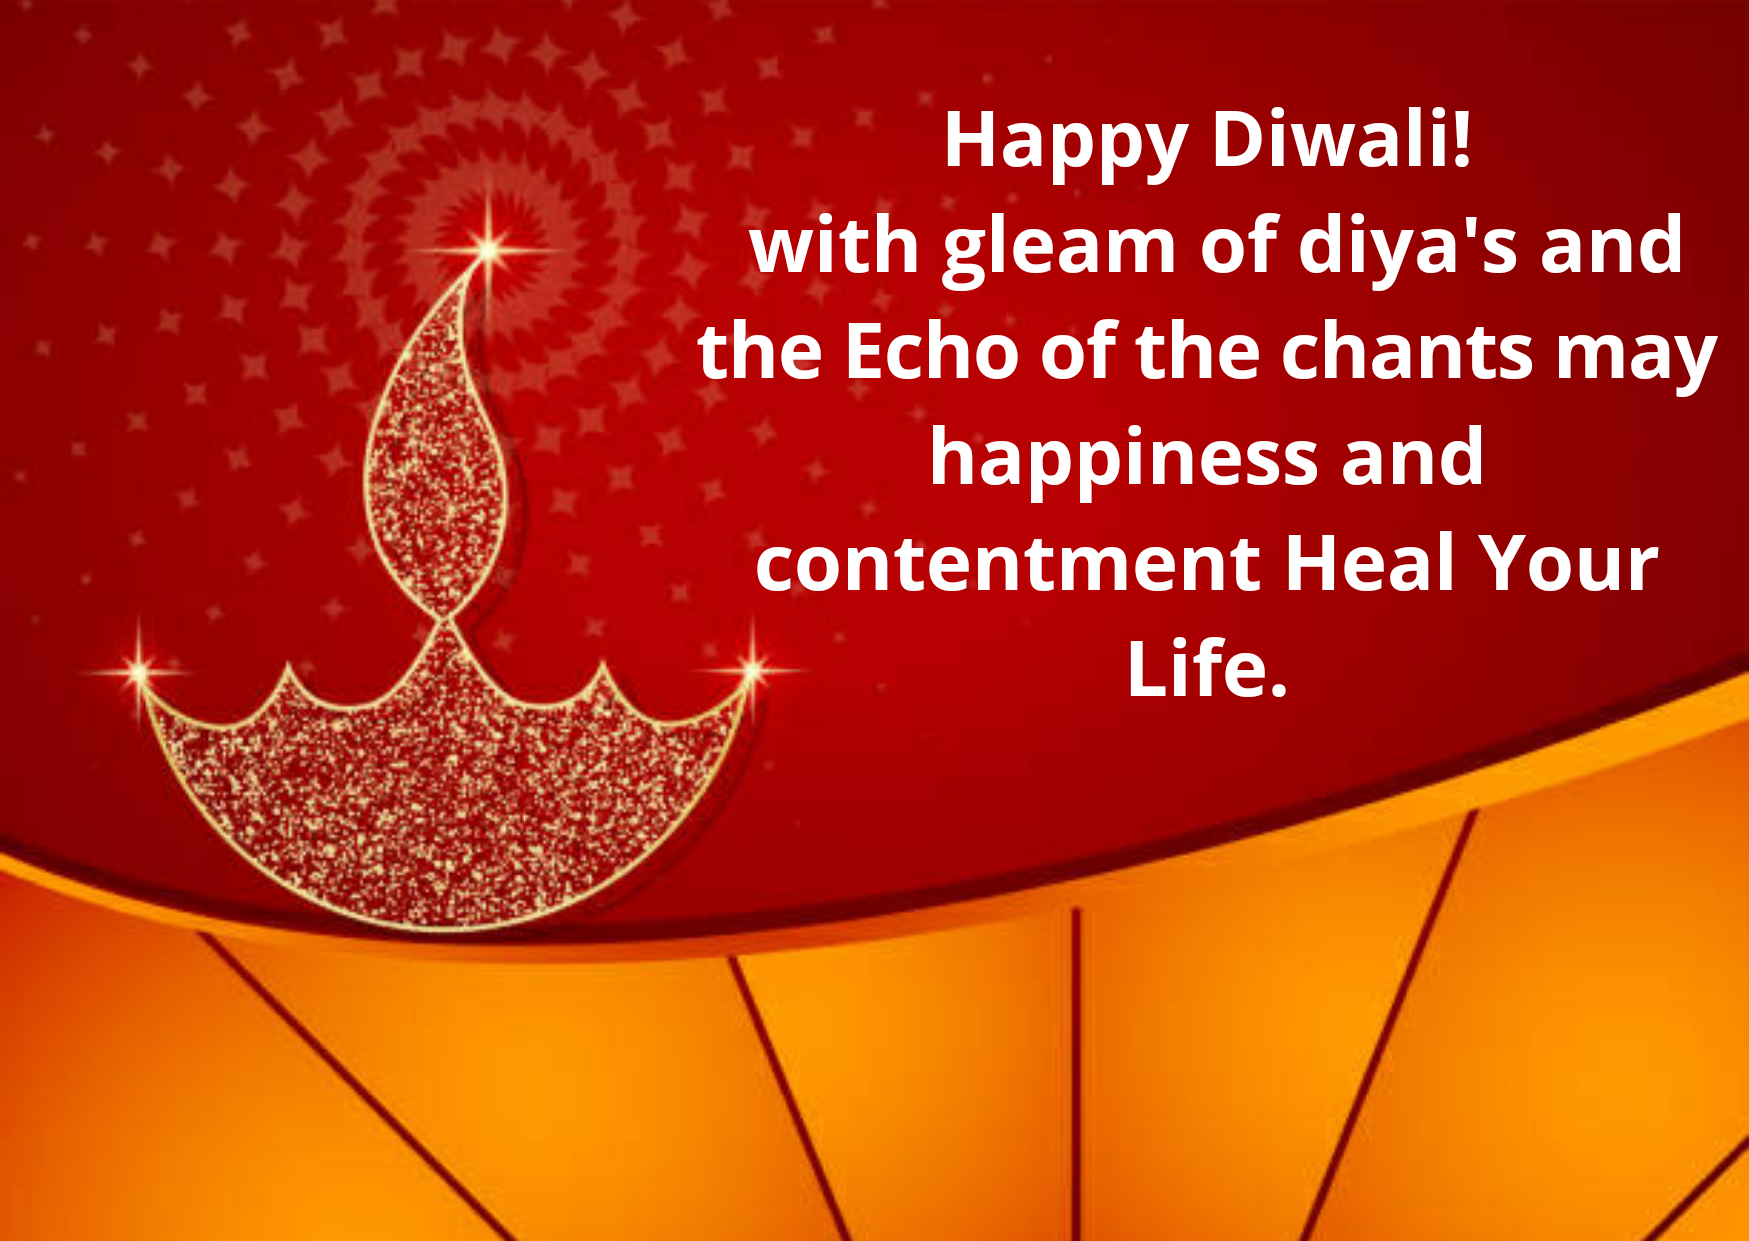 Happy Diwali Wishes, Images, quotes, status, greeting for whatsapp free download,